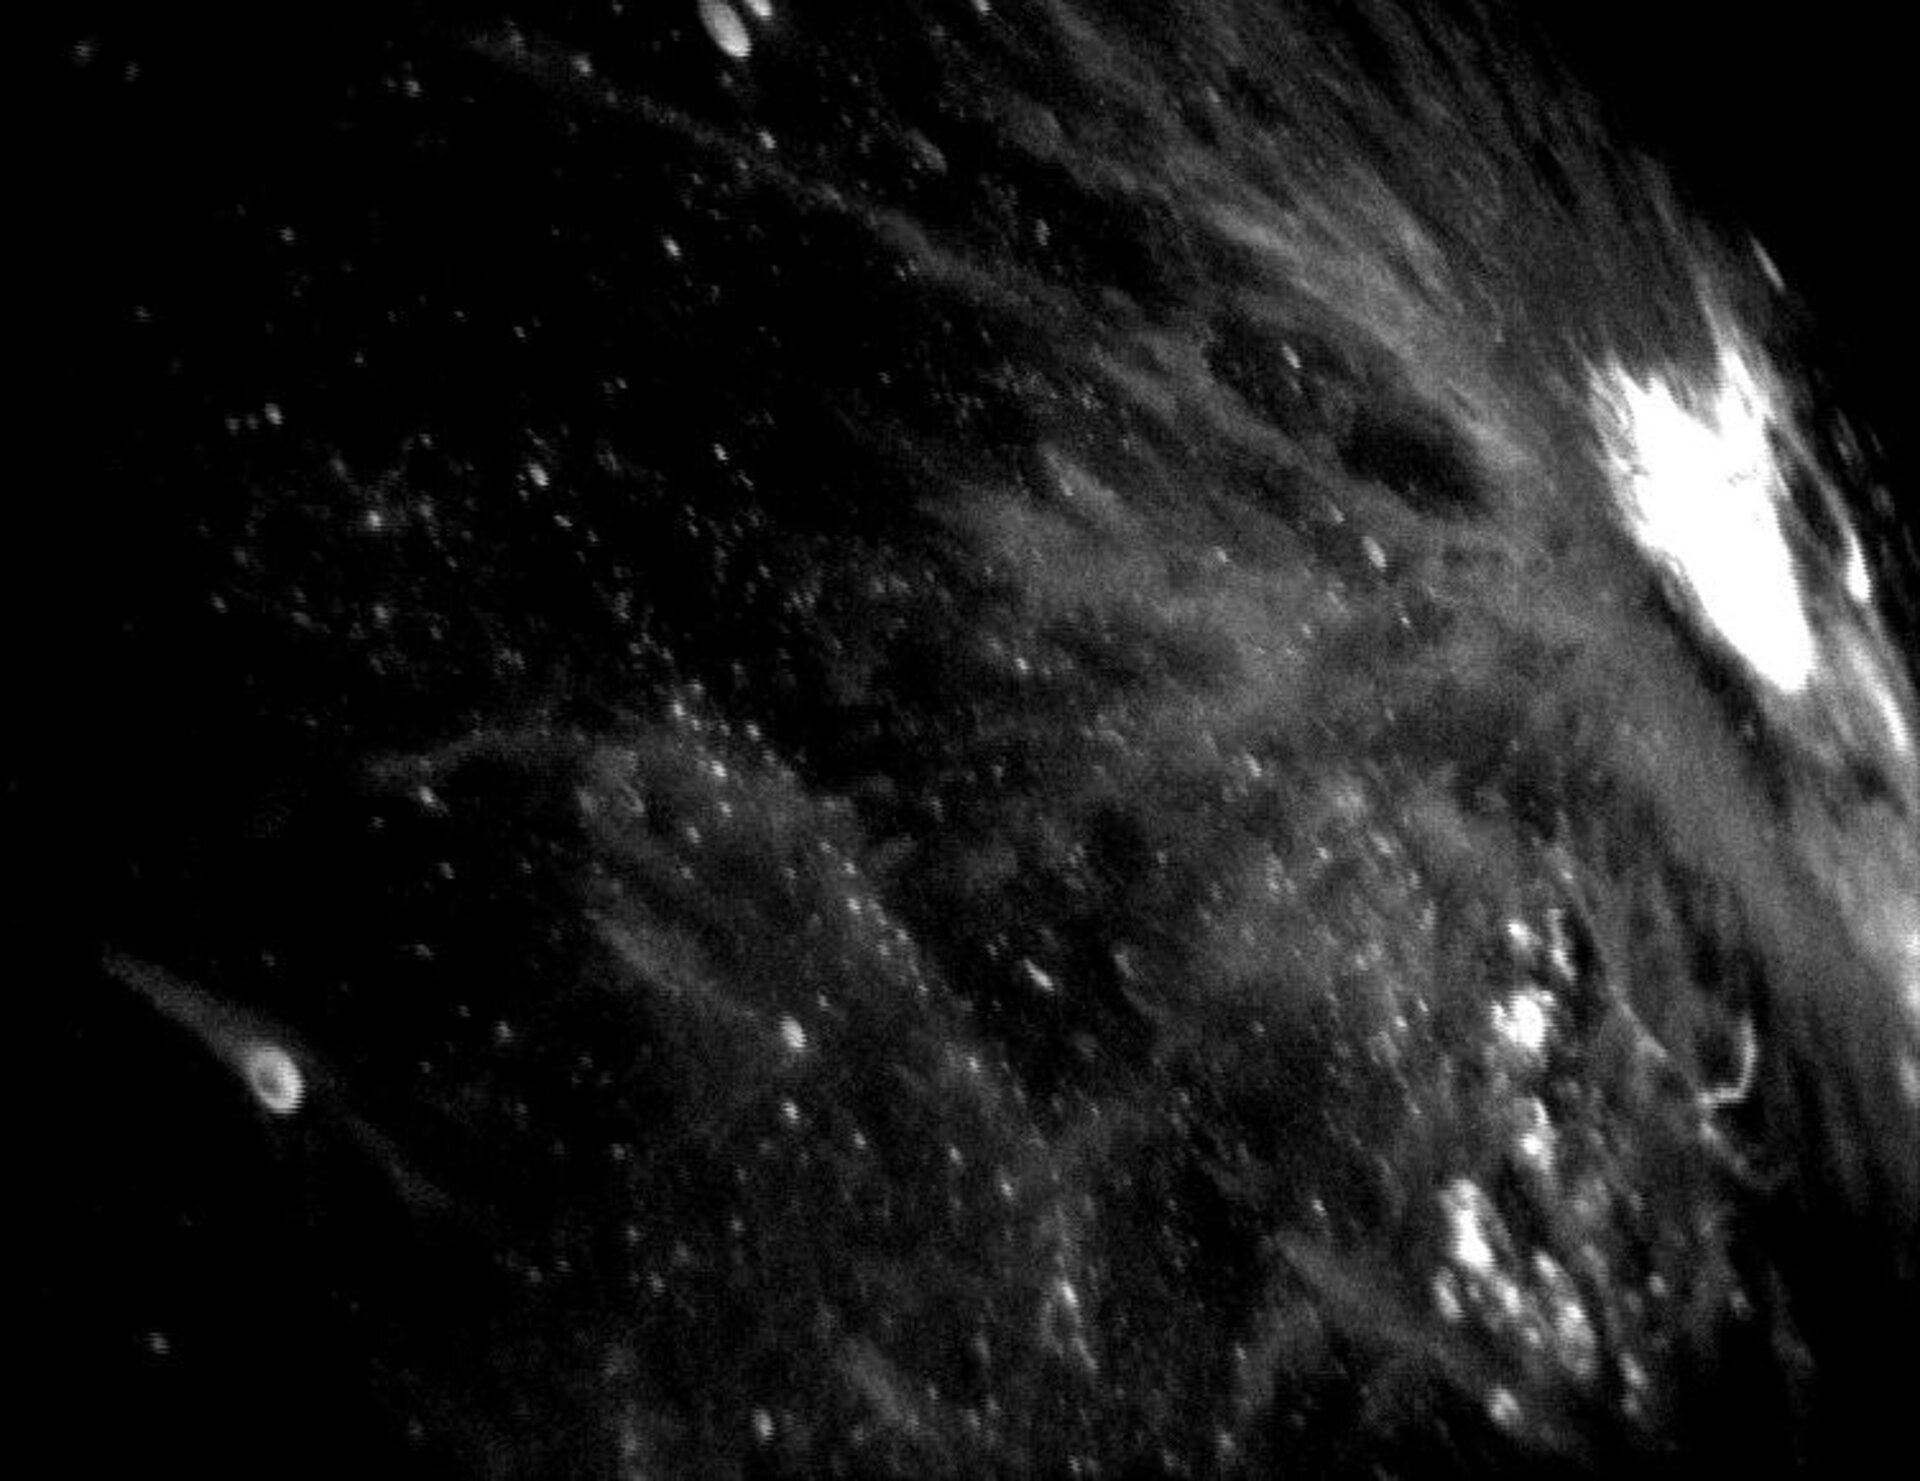 Impact crater shown in star tracker animation